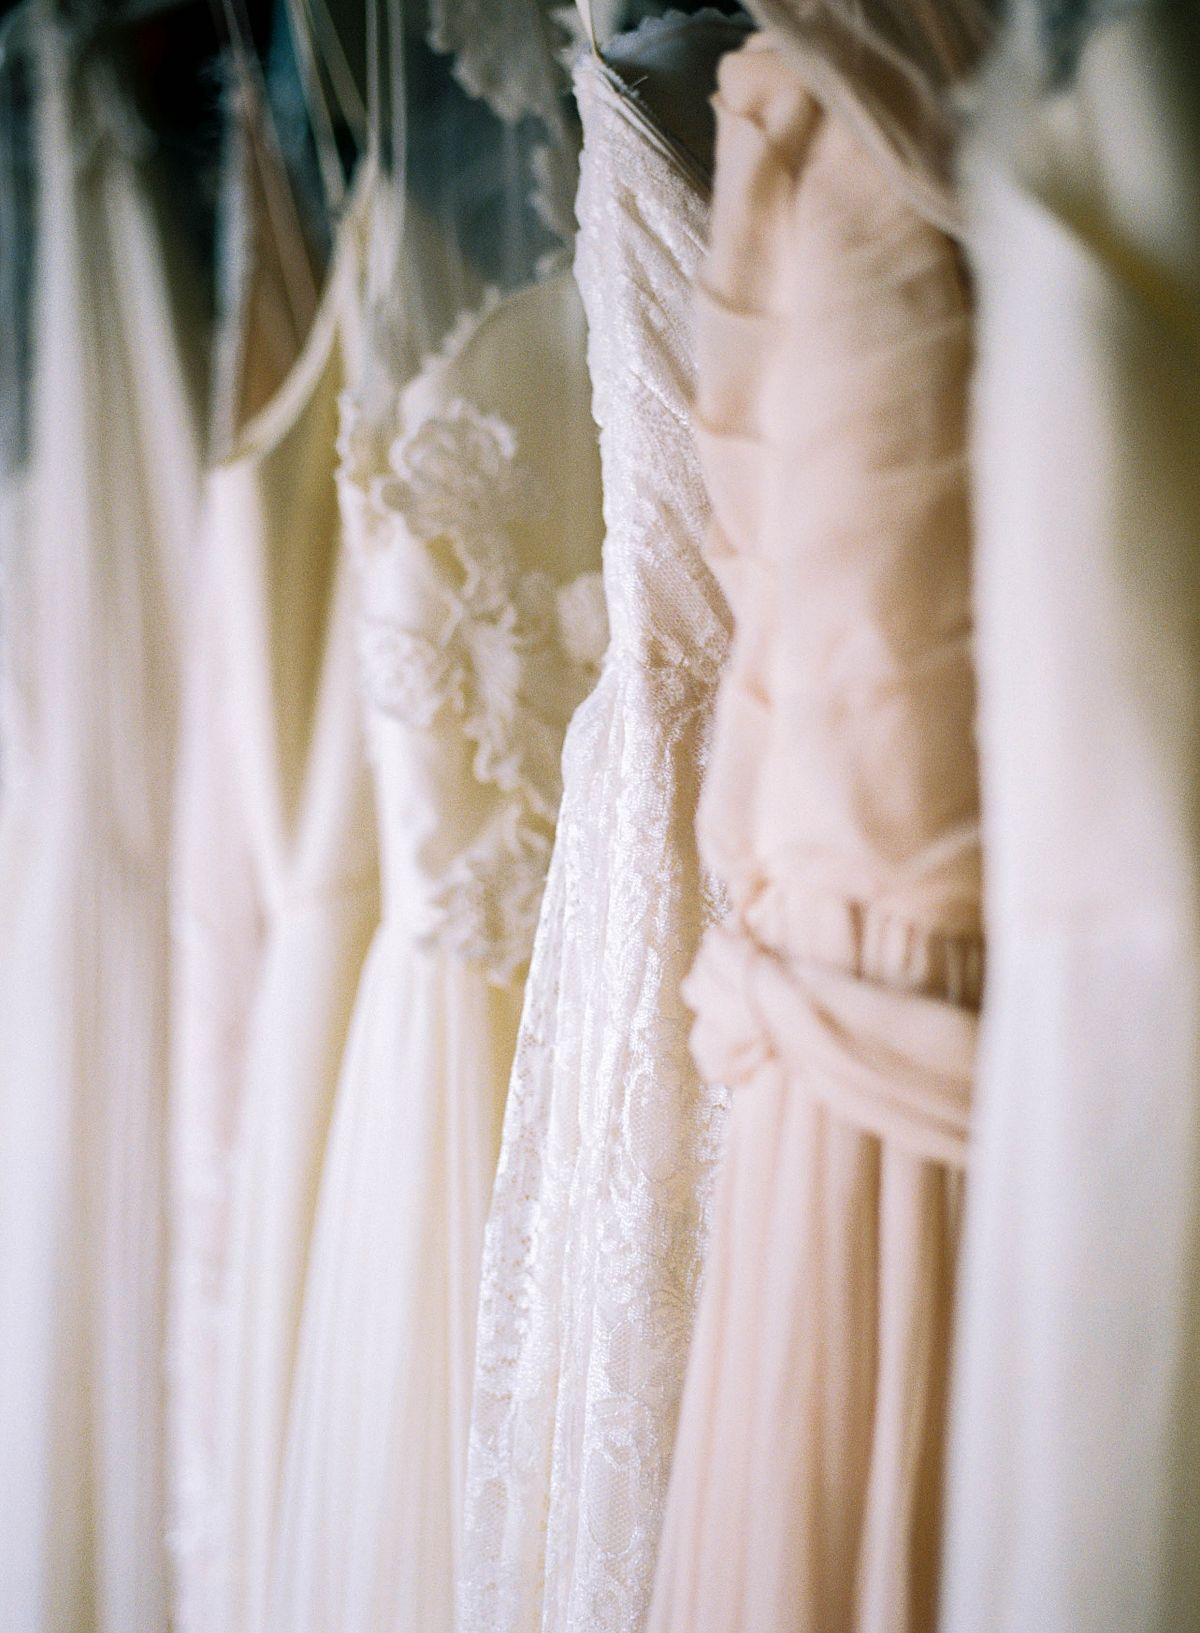 Dress Shopping Tips from The Dress Theory on Wedding Sparrow